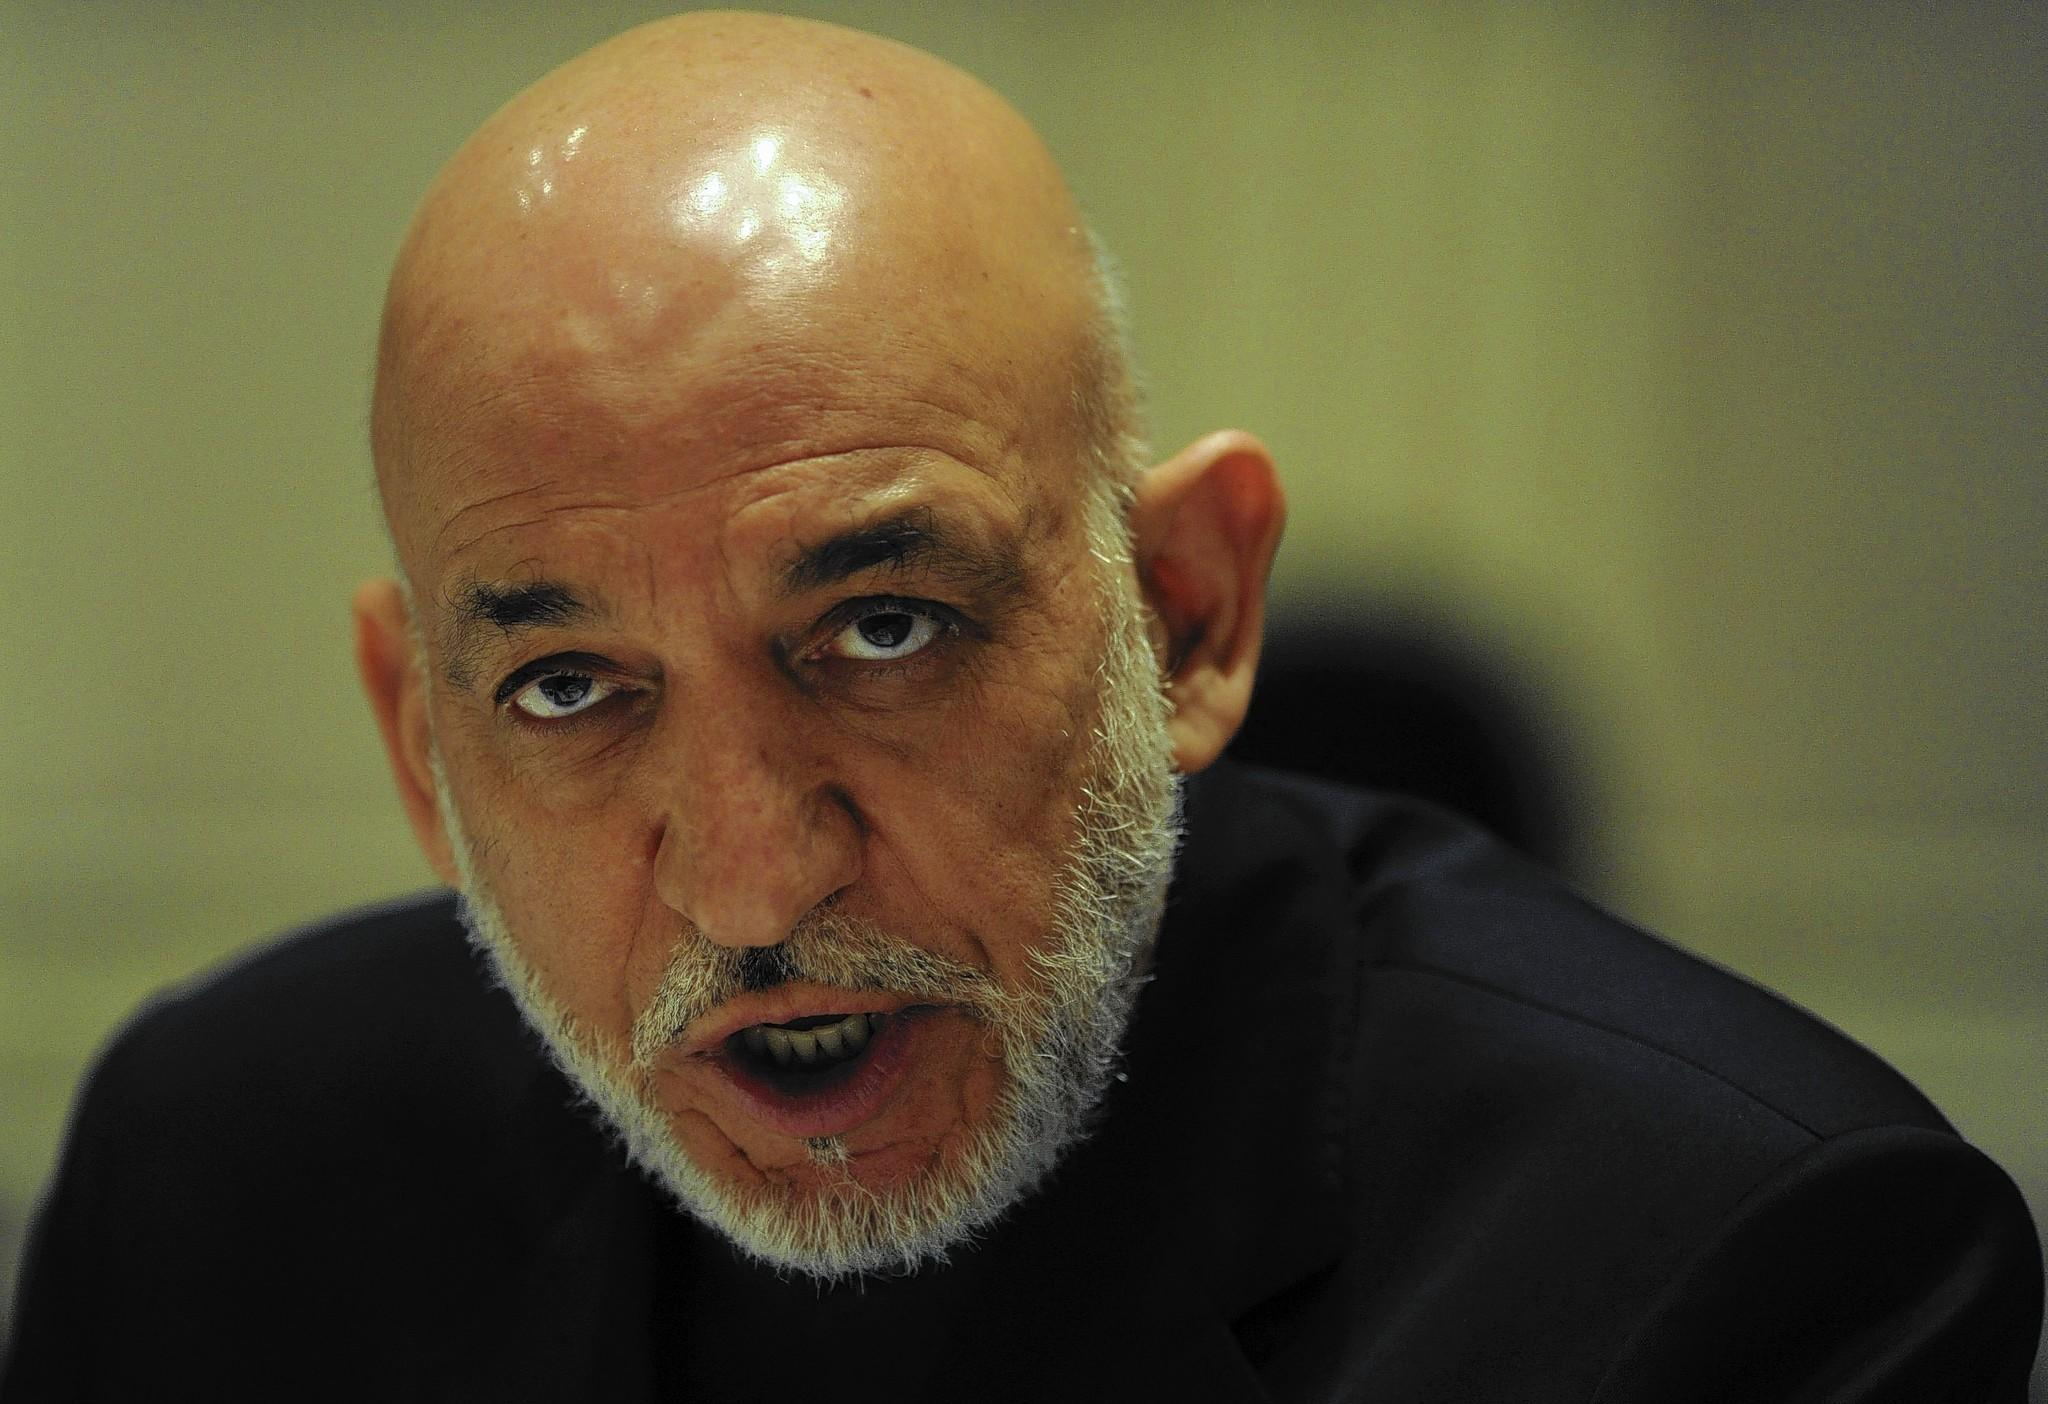 Afghan President Hamid Karzai has said he'll let his successor sign or not sign the security agreement with the U.S.